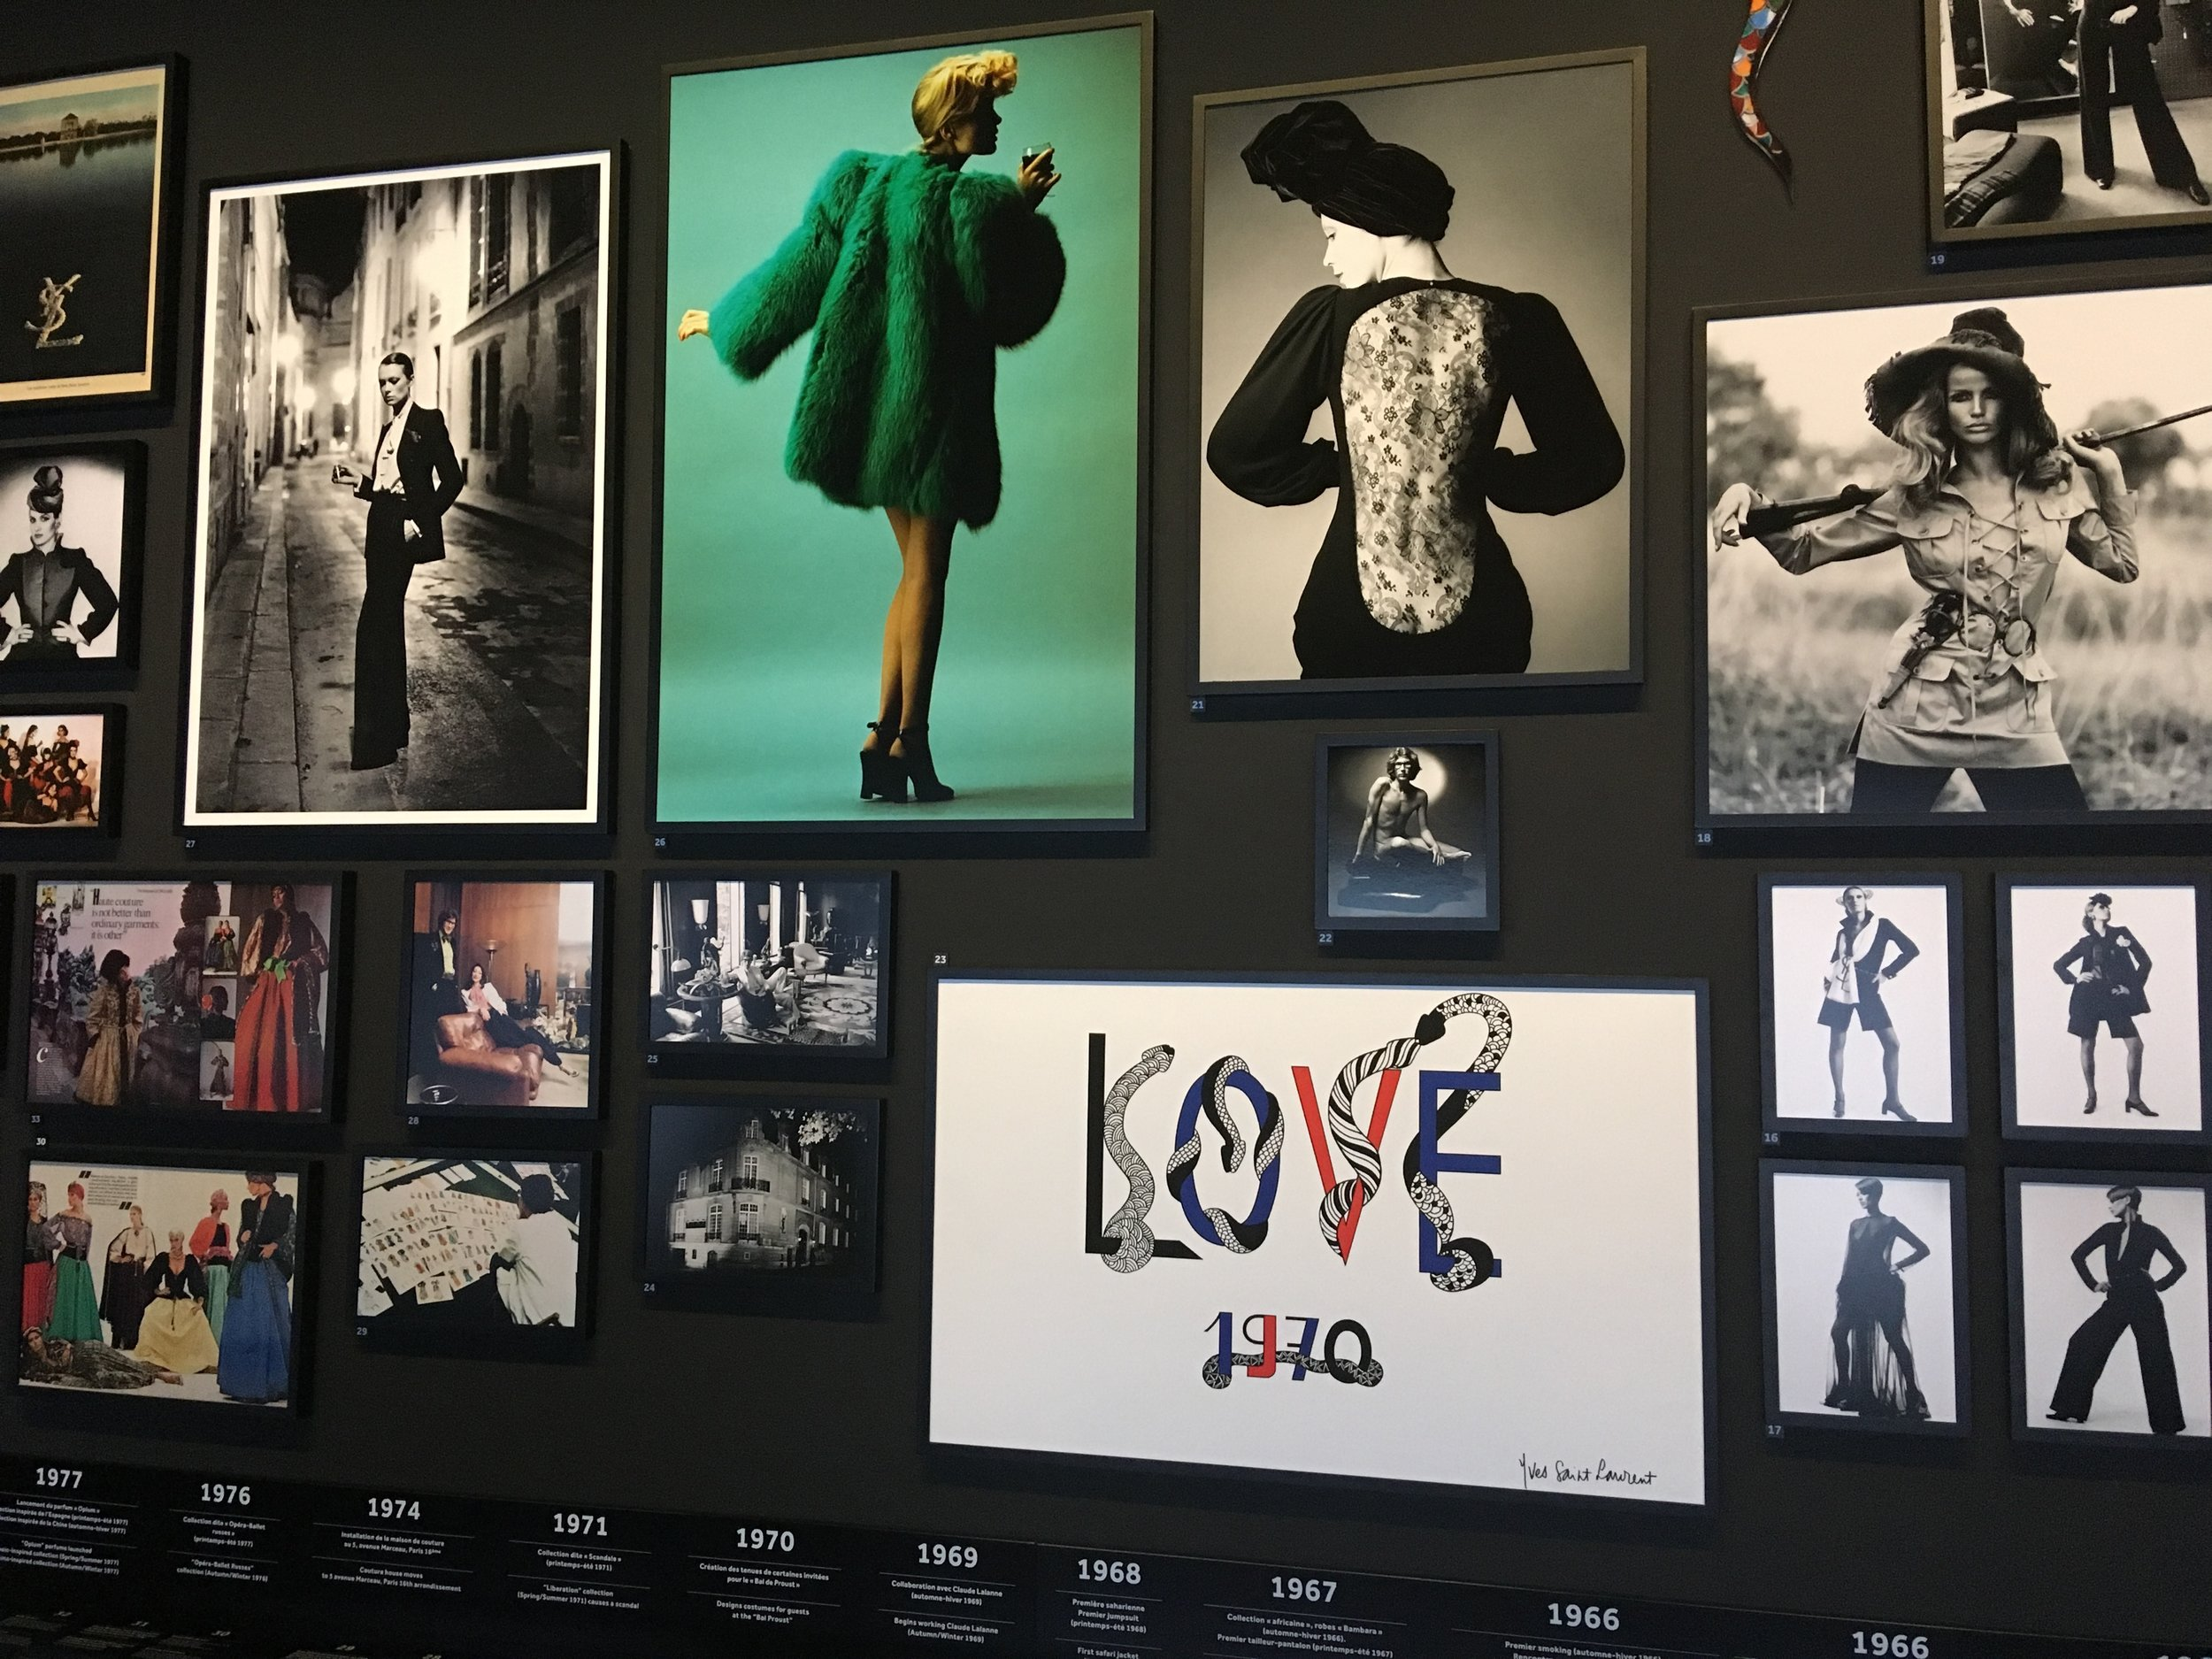 Helmut Newton's iconic image of YSL's Le Smoking, shot in rue Aubriot, Paris, 1975, hanging alongside Jeanloup Sieff's 1970 image of a YSL lace-back dress